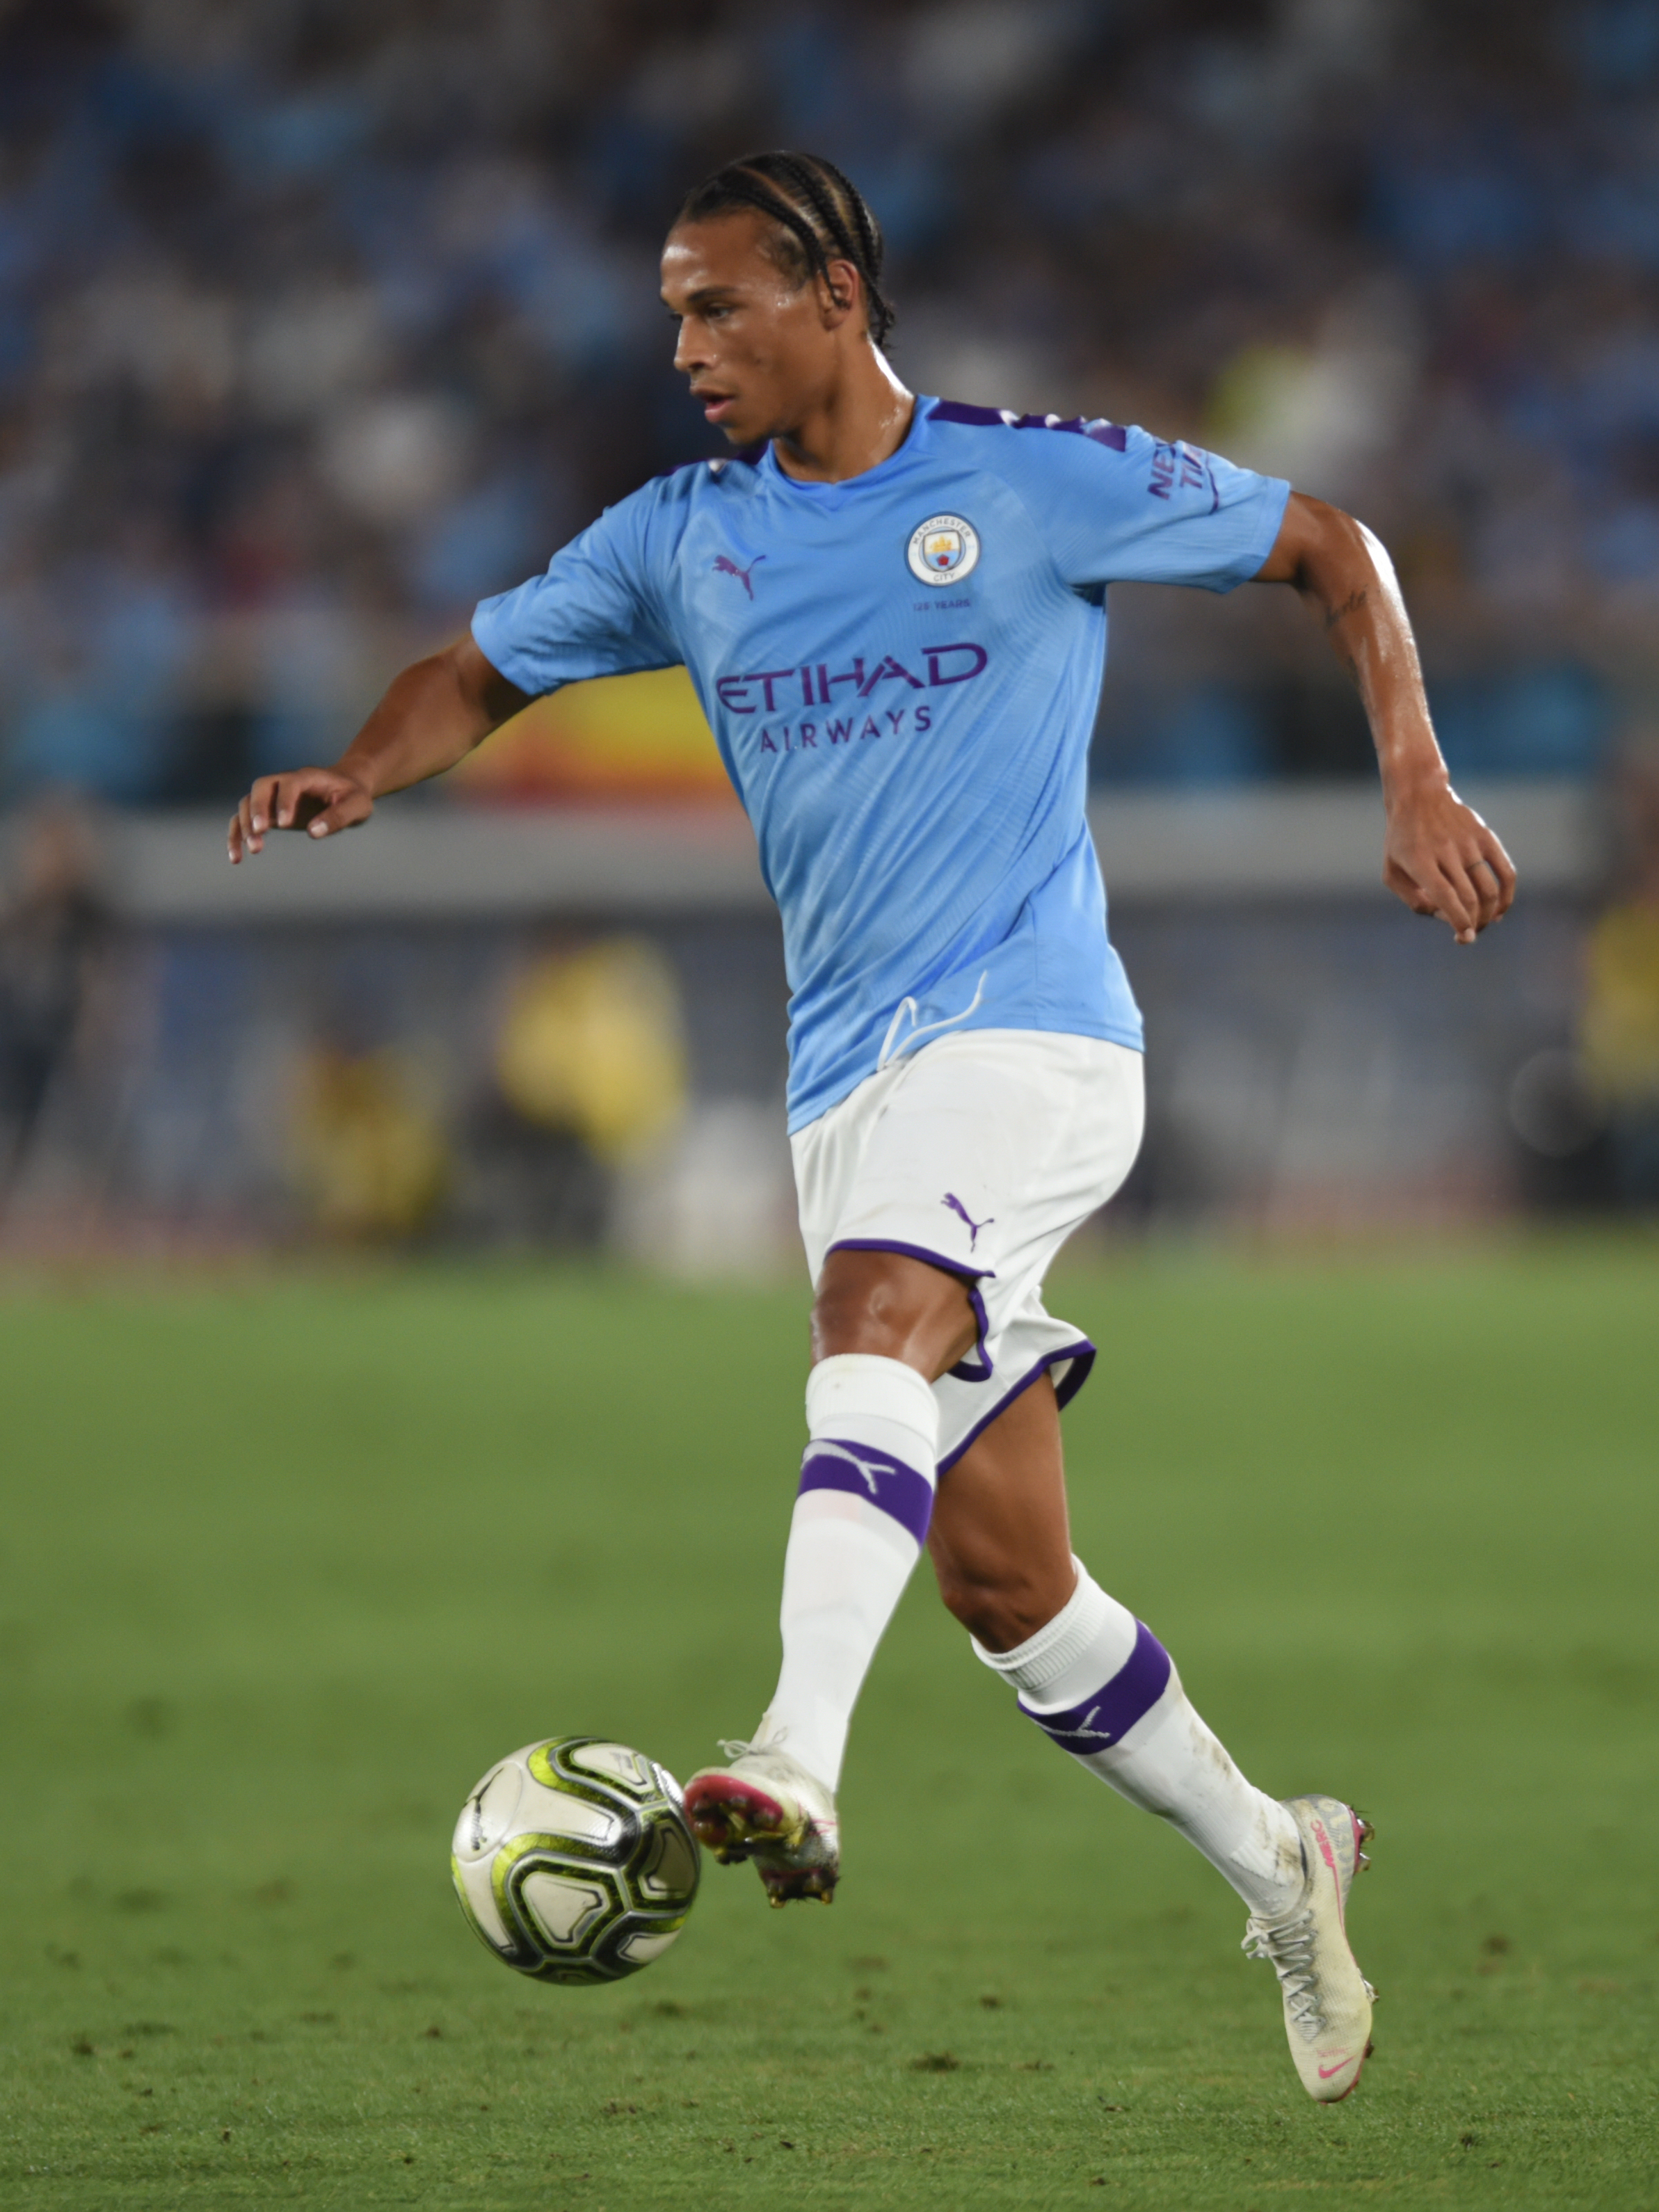 Yokohama F.Marinos v Manchester City - Preseason Friendly